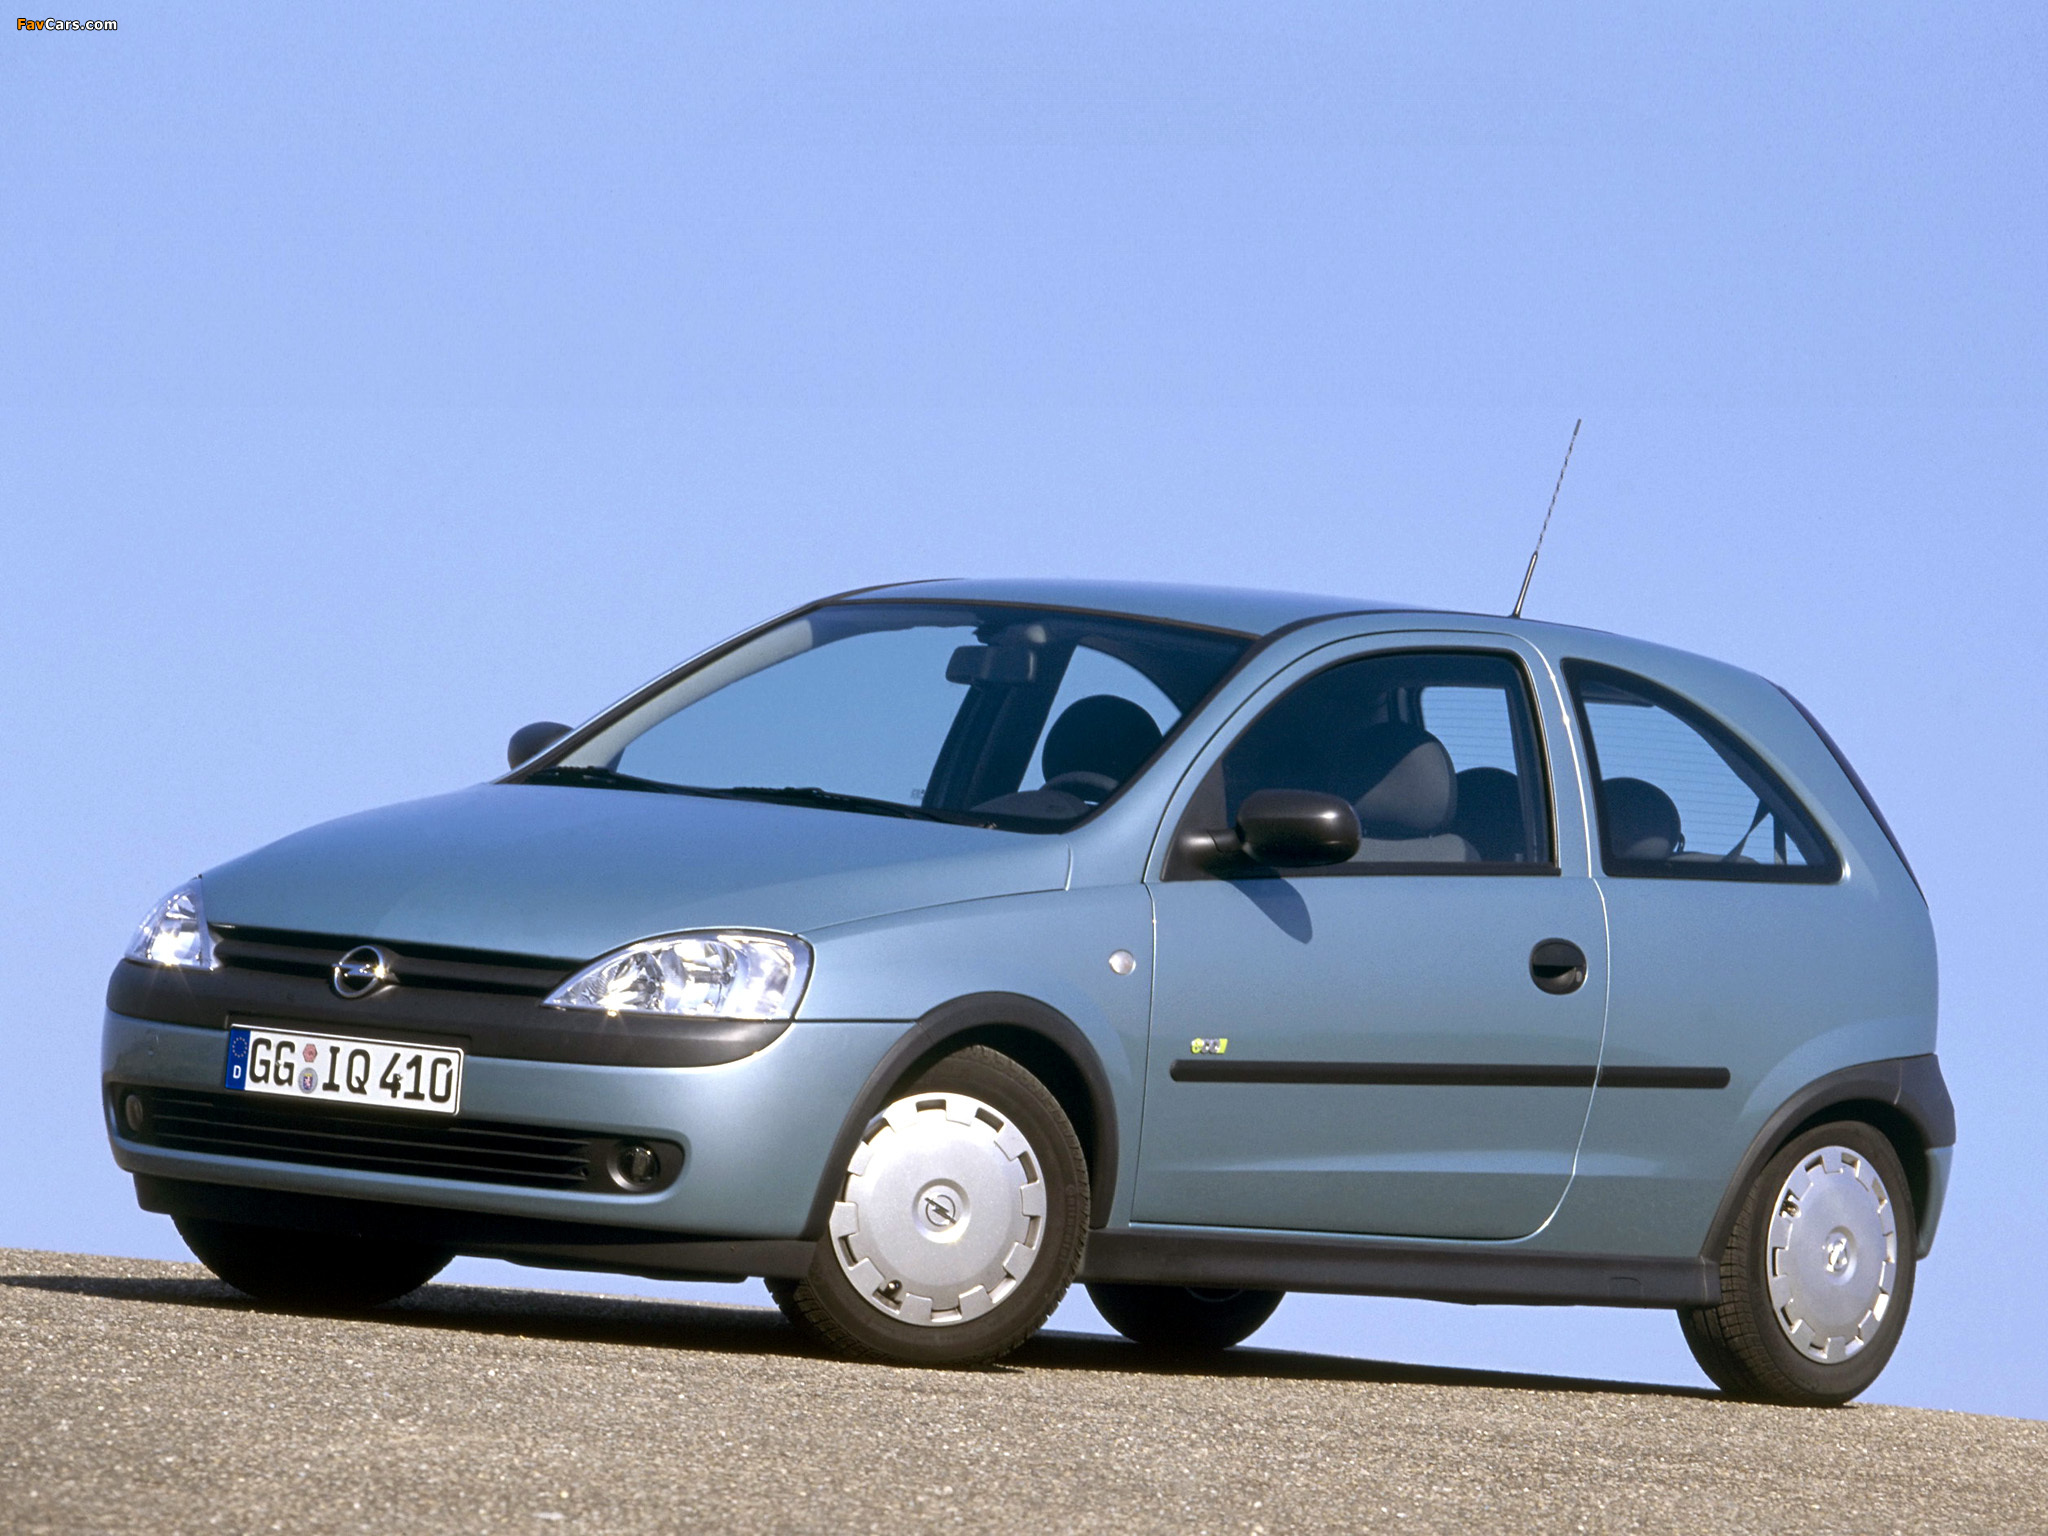 & Opel Corsa 3-door (C) 2000\u201303 wallpapers